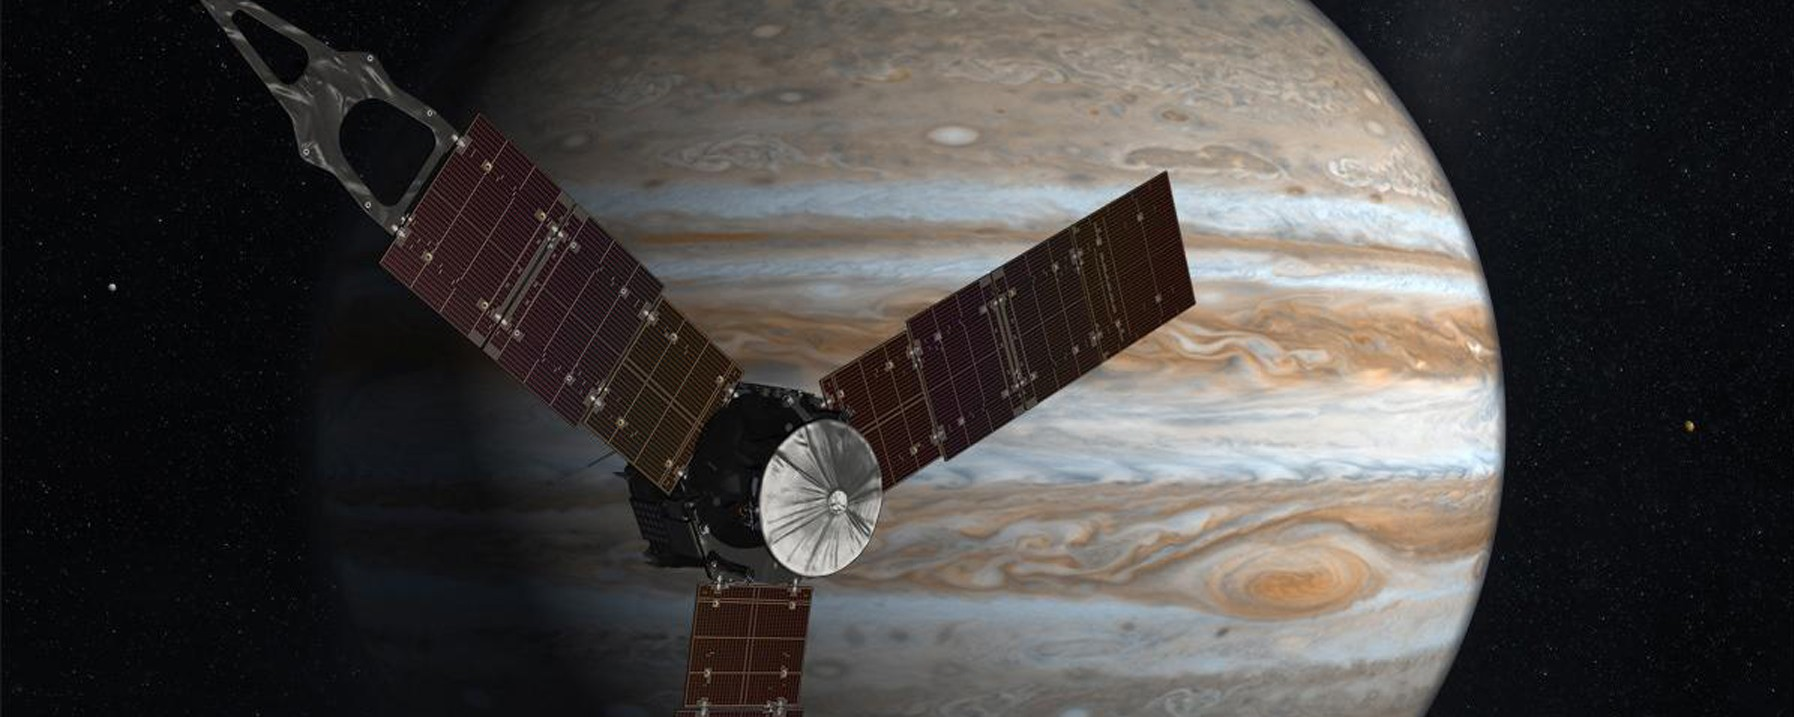 Juno Spacecraft Flawlessly Enters Orbit Around Jupiter